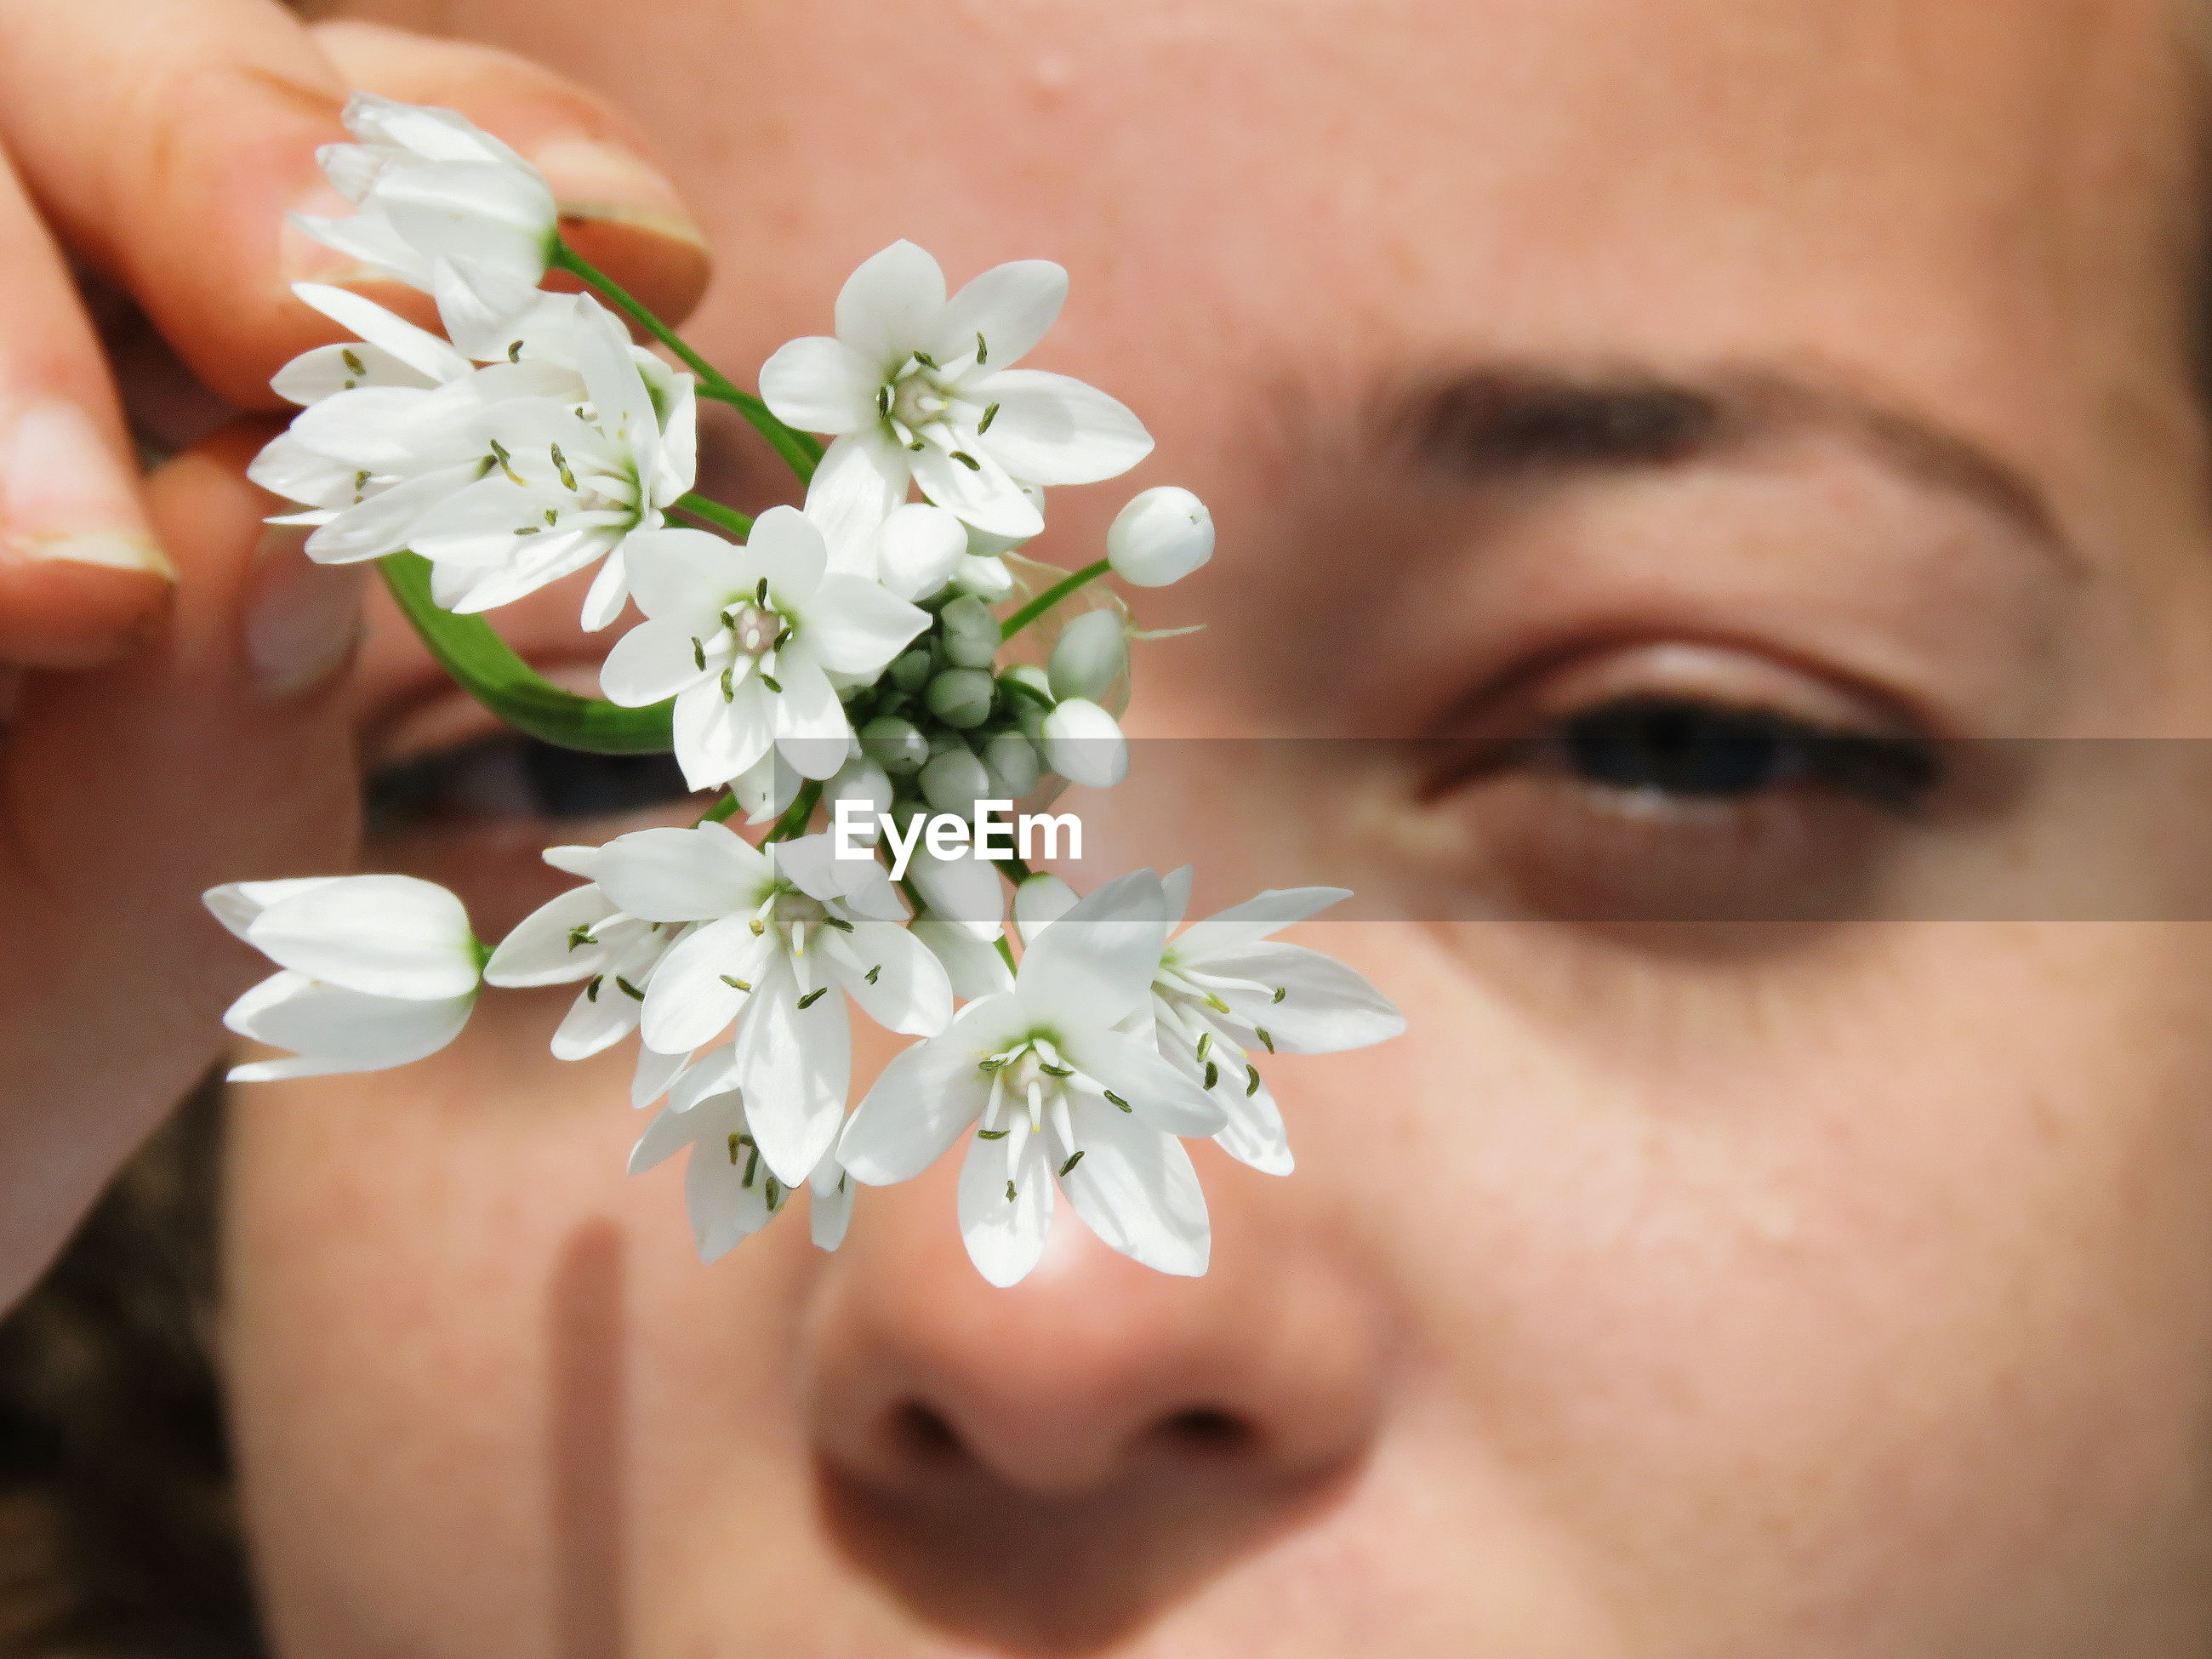 Close-up portrait of woman holding white flowers